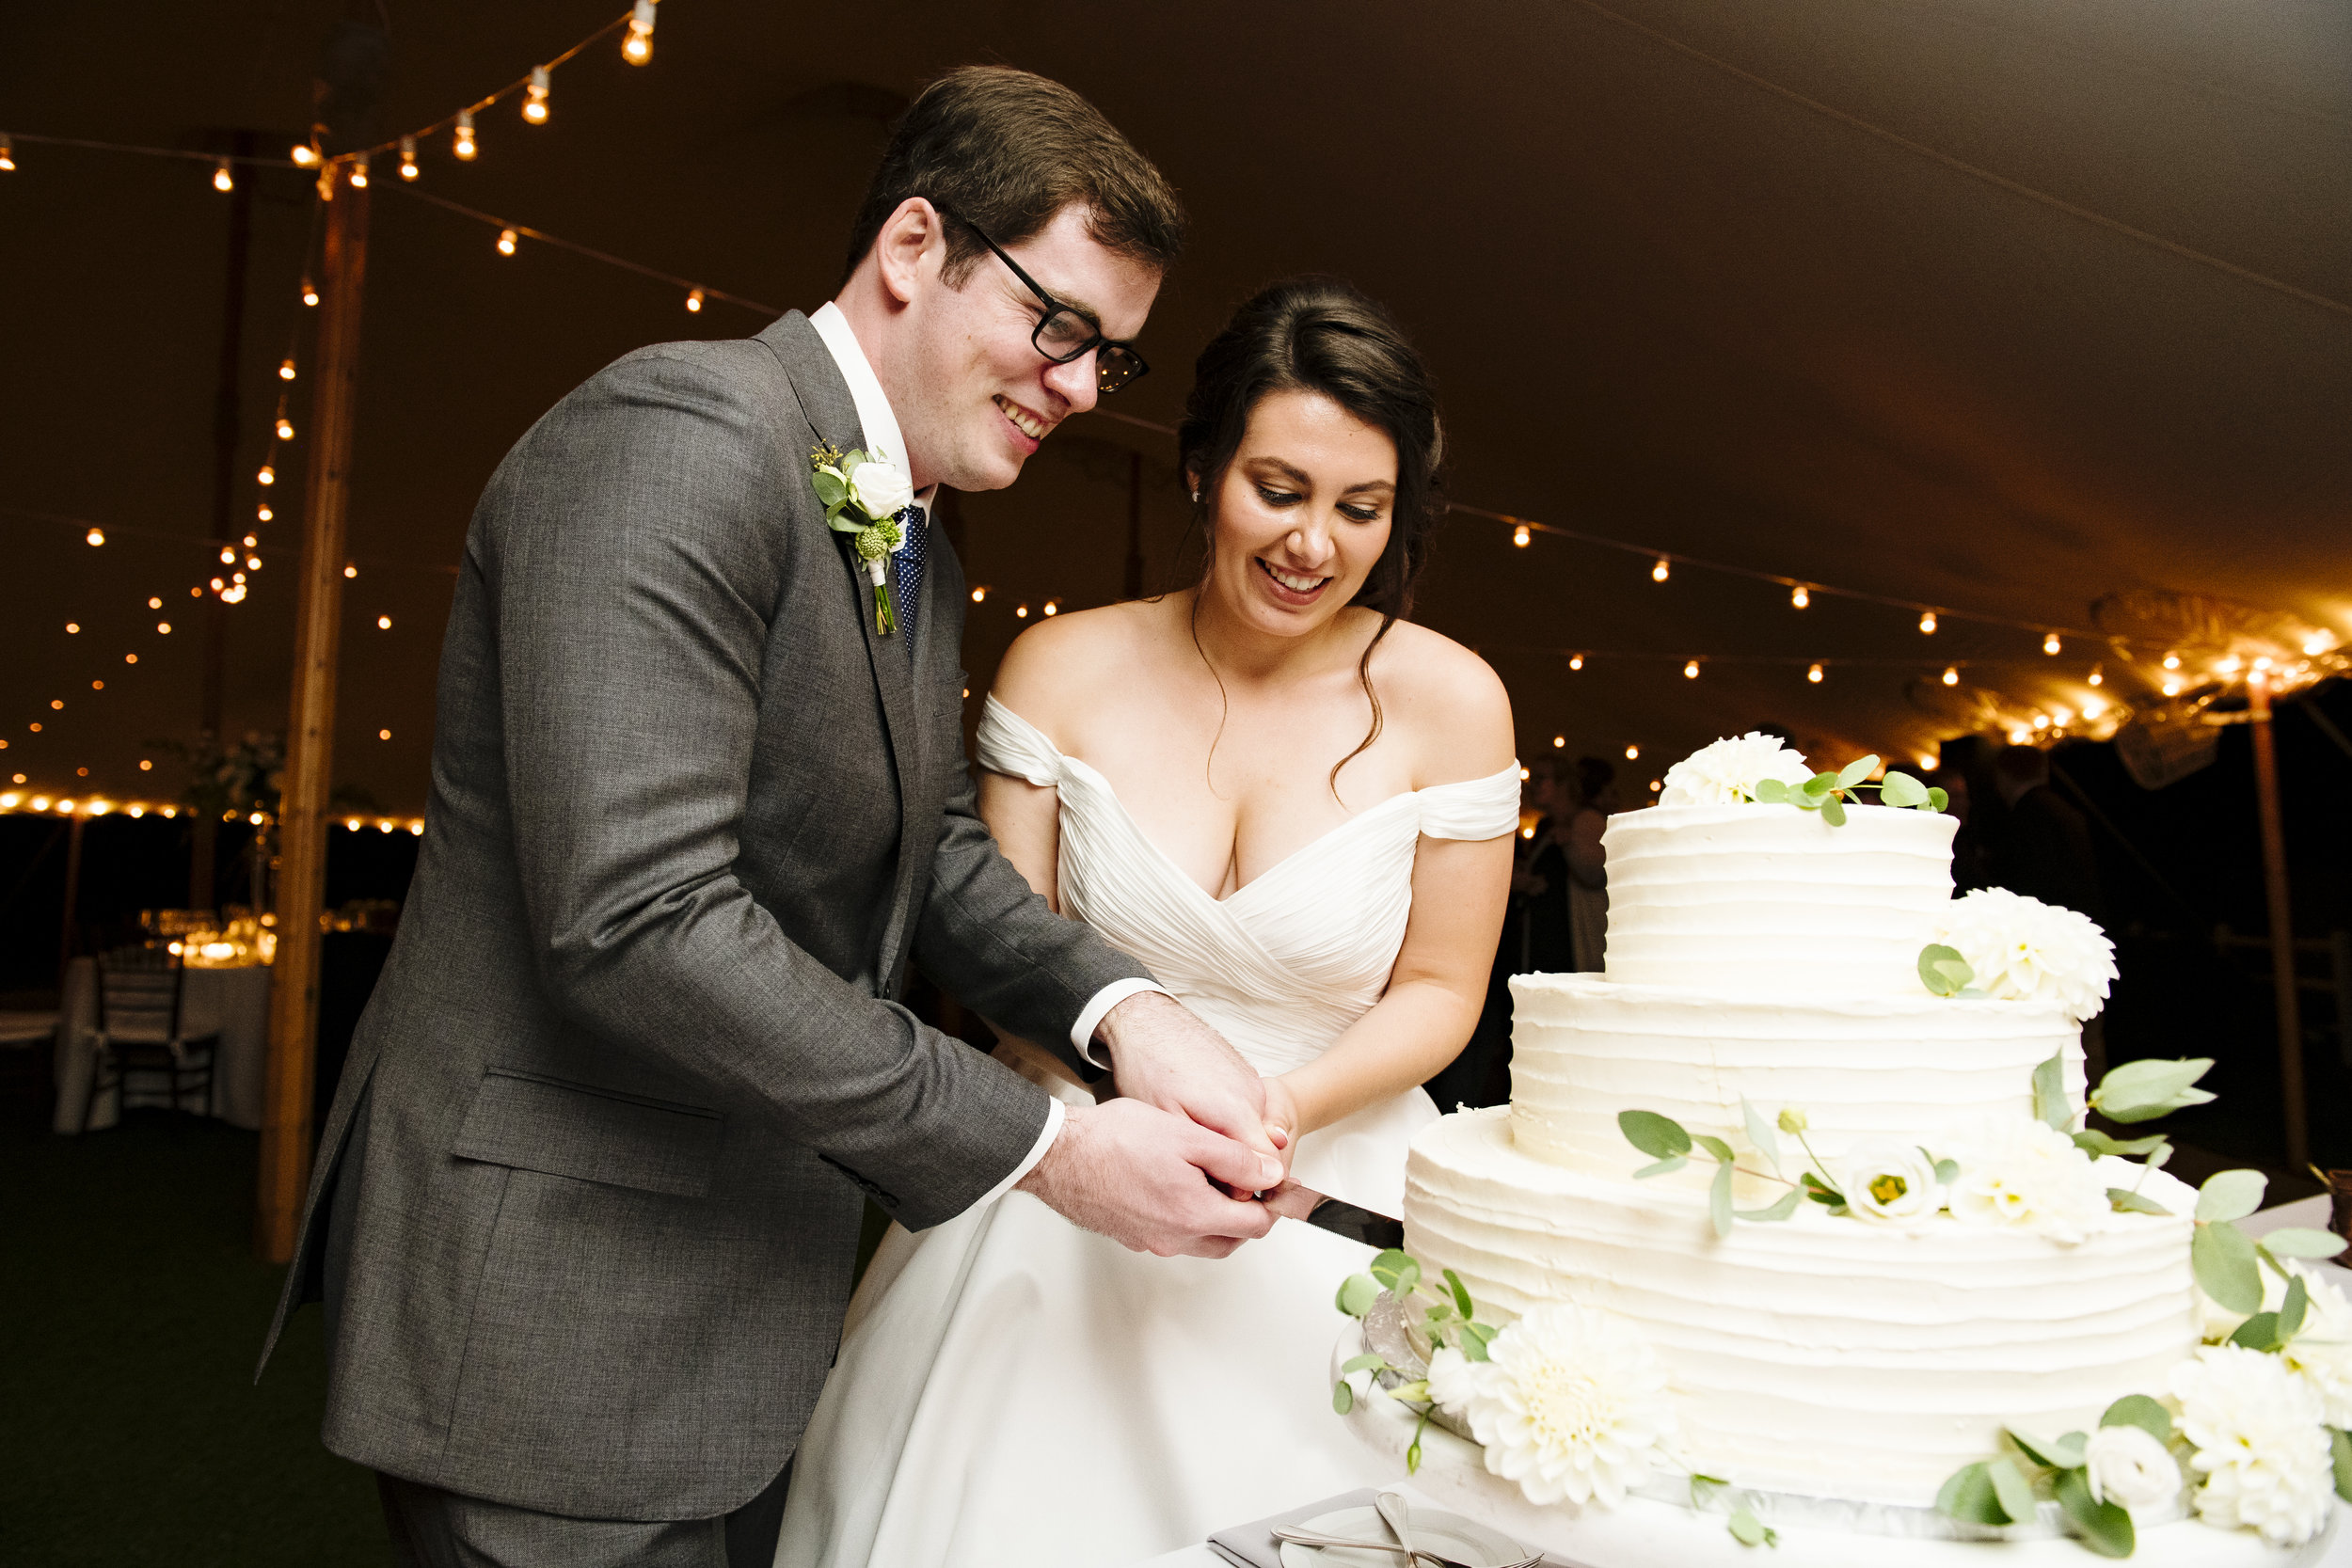 Cutting the cake made by A Thyme To Cook at Jonathan Edwards Winery in Connecticut - Pearl Weddings & Events